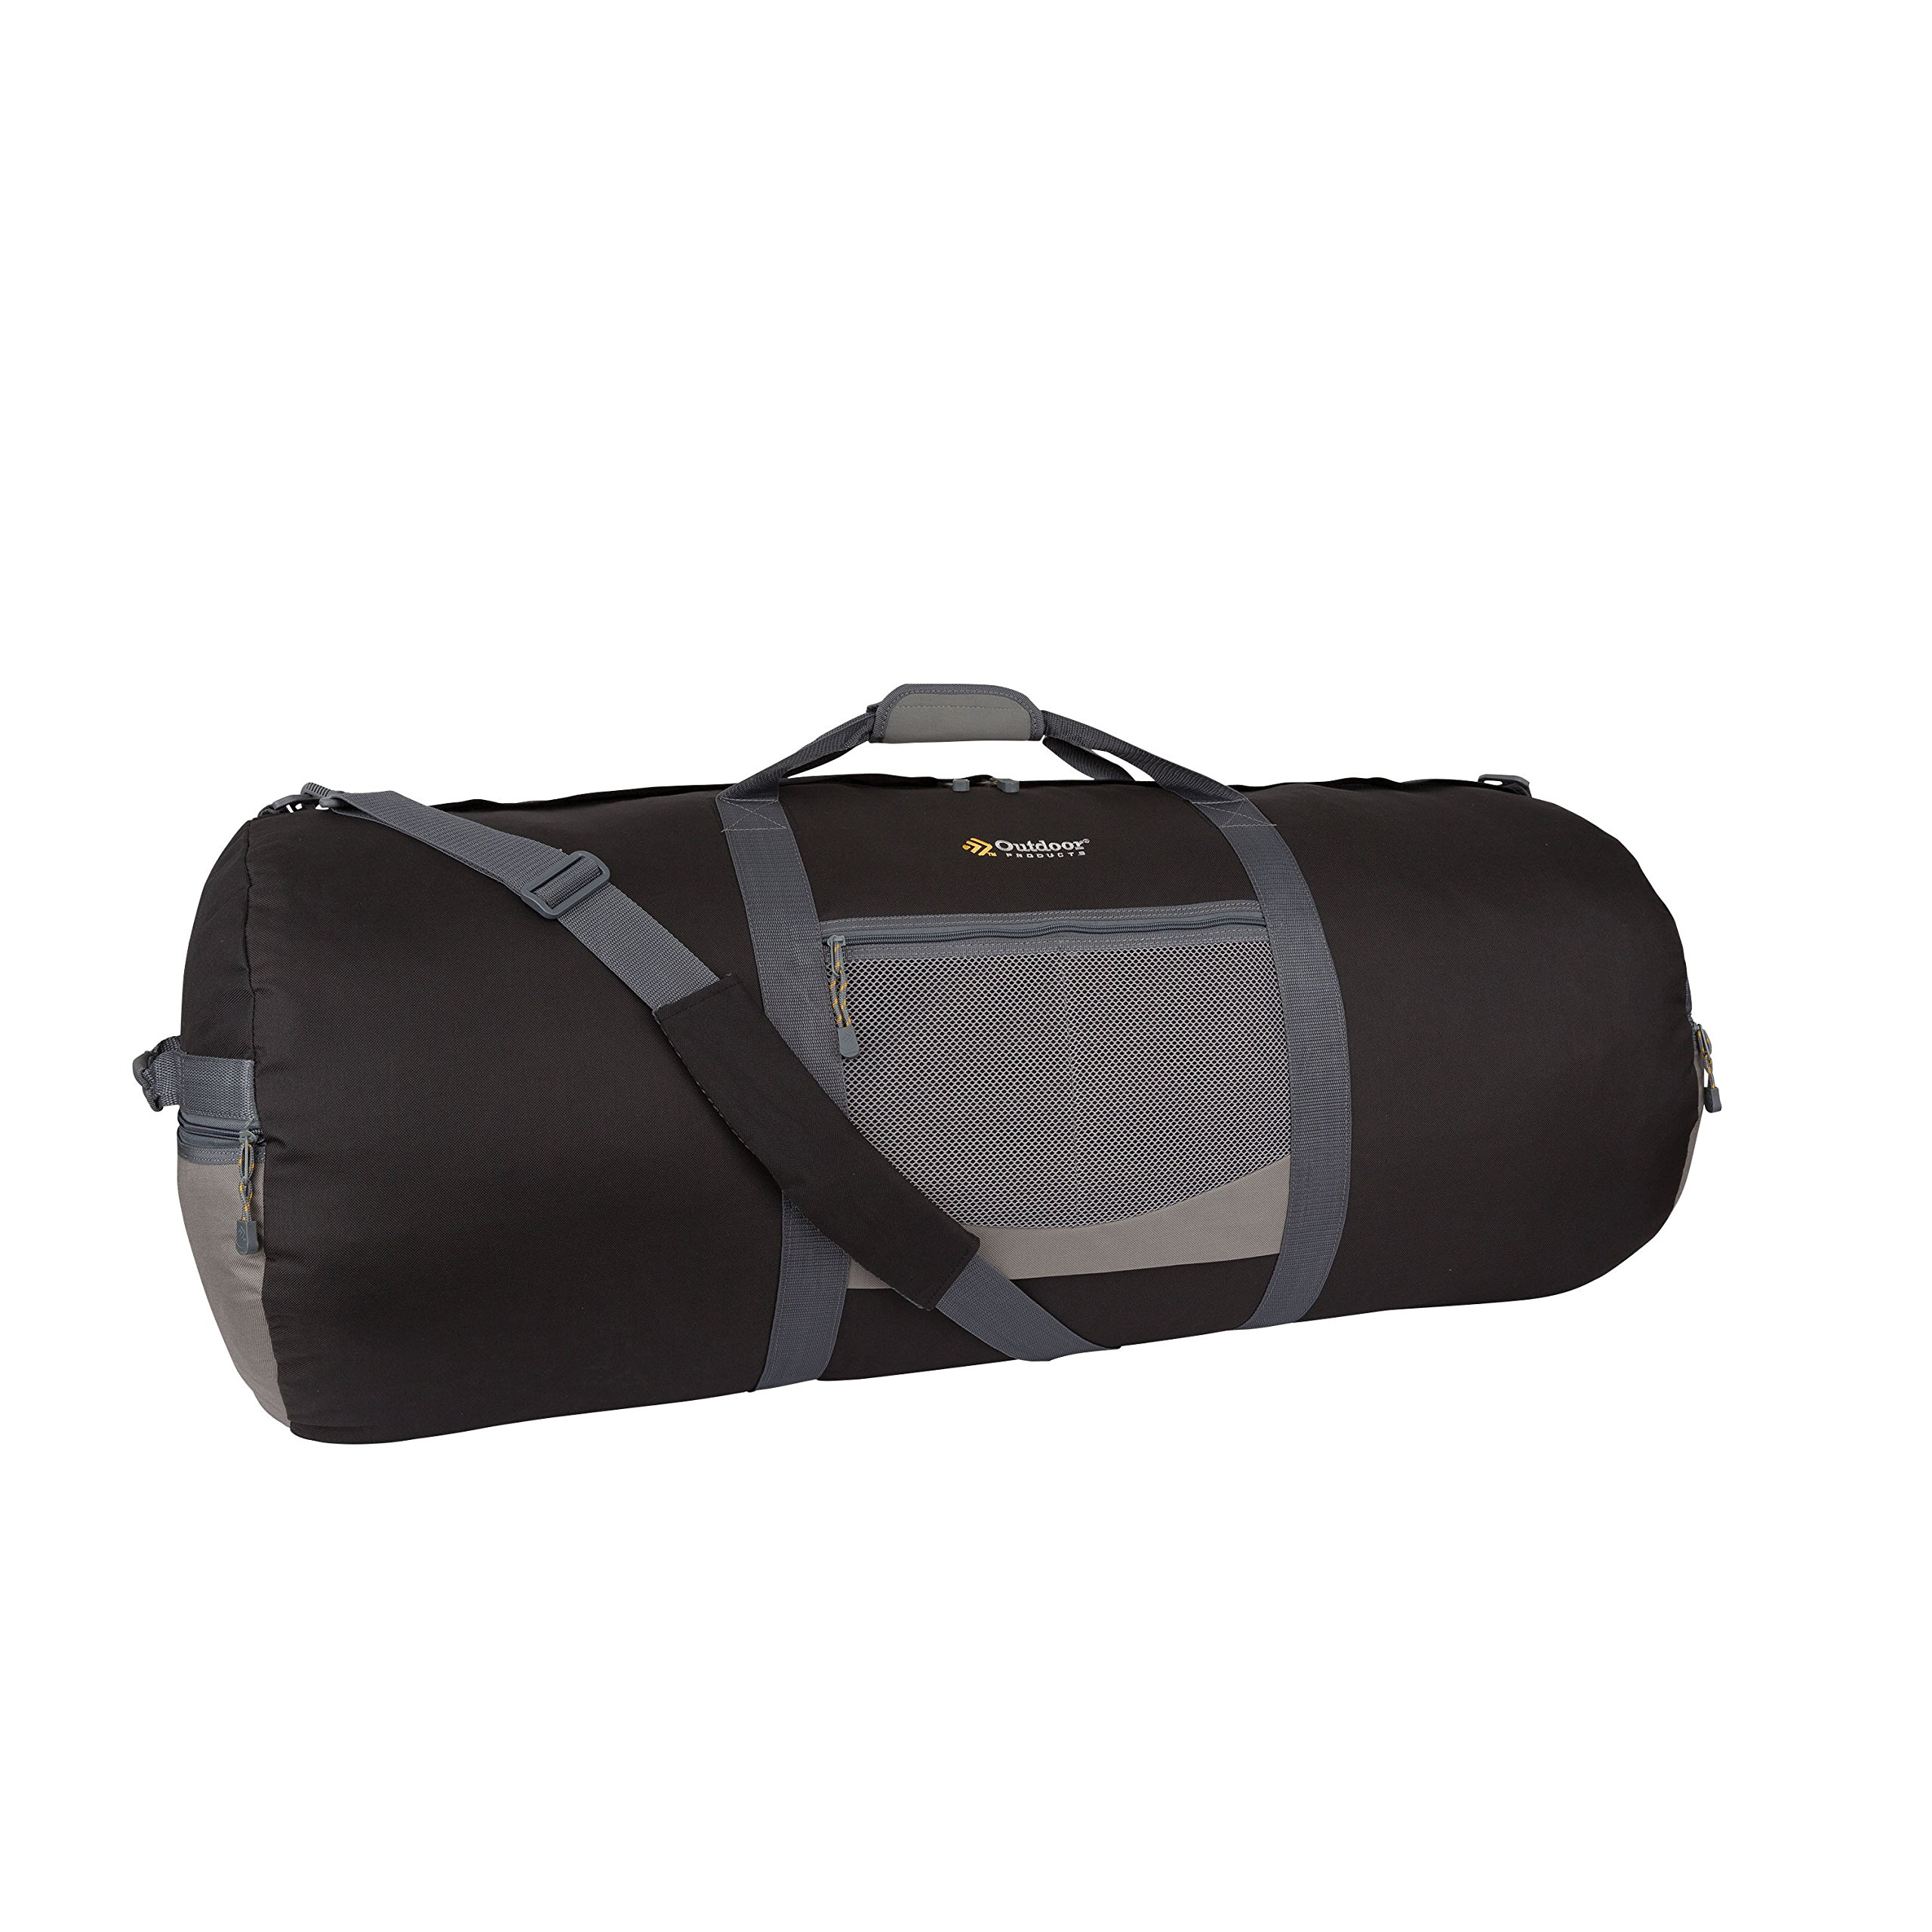 Outdoor Products Utility Duffle, Colossal, Black